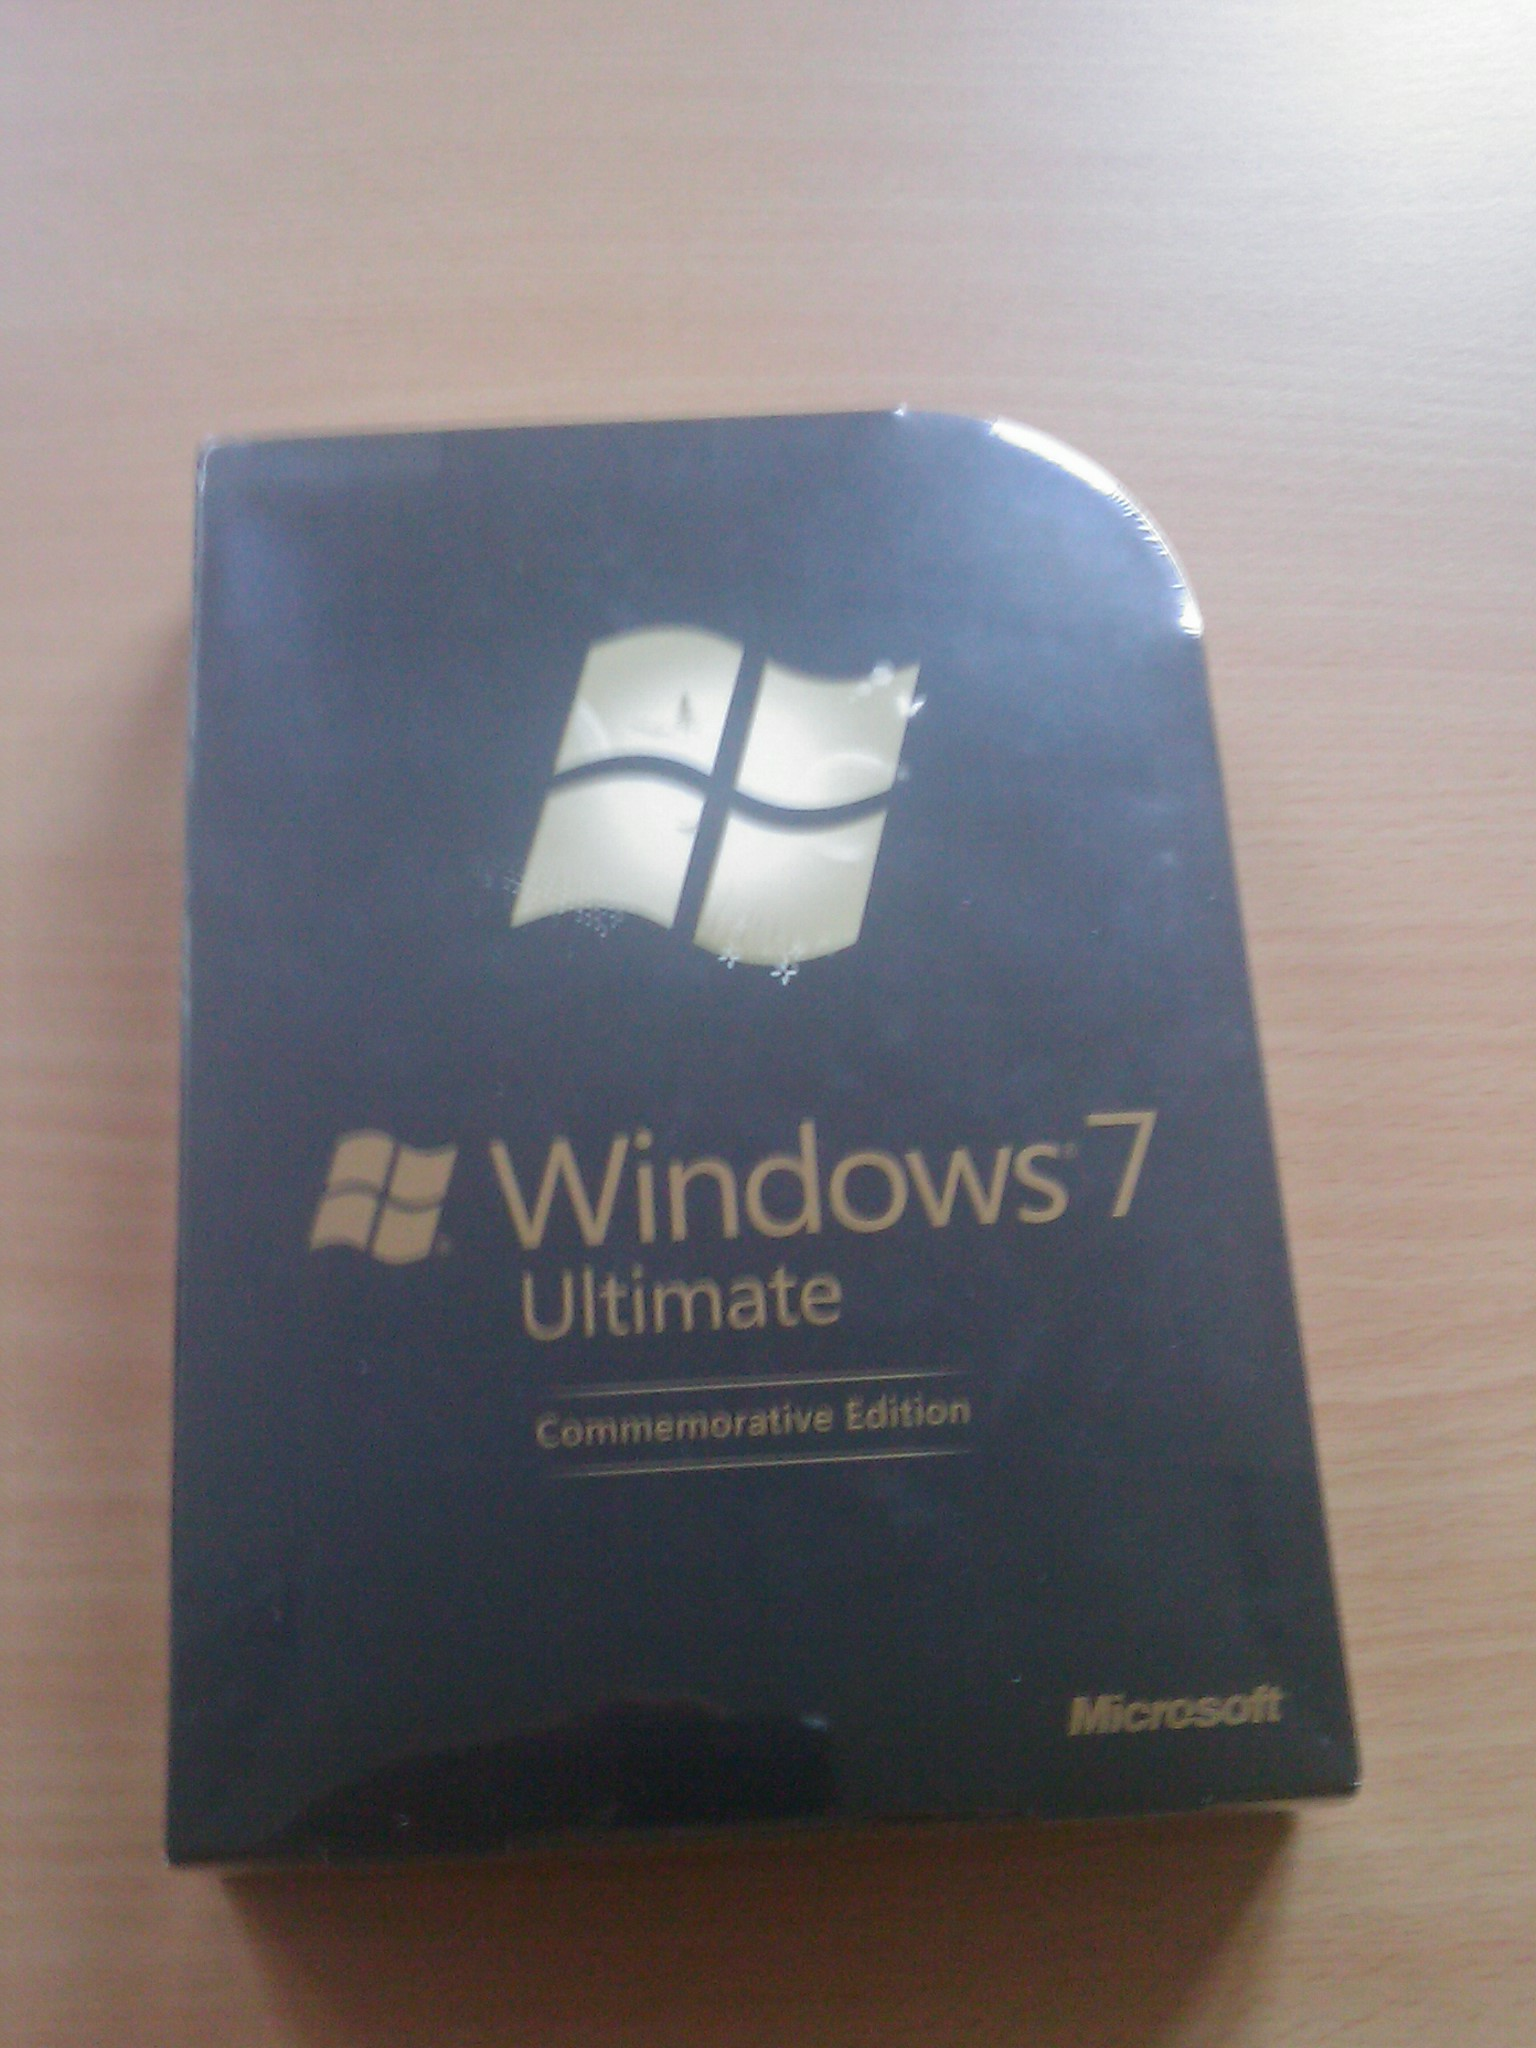 Windows 7 Ultimate Box